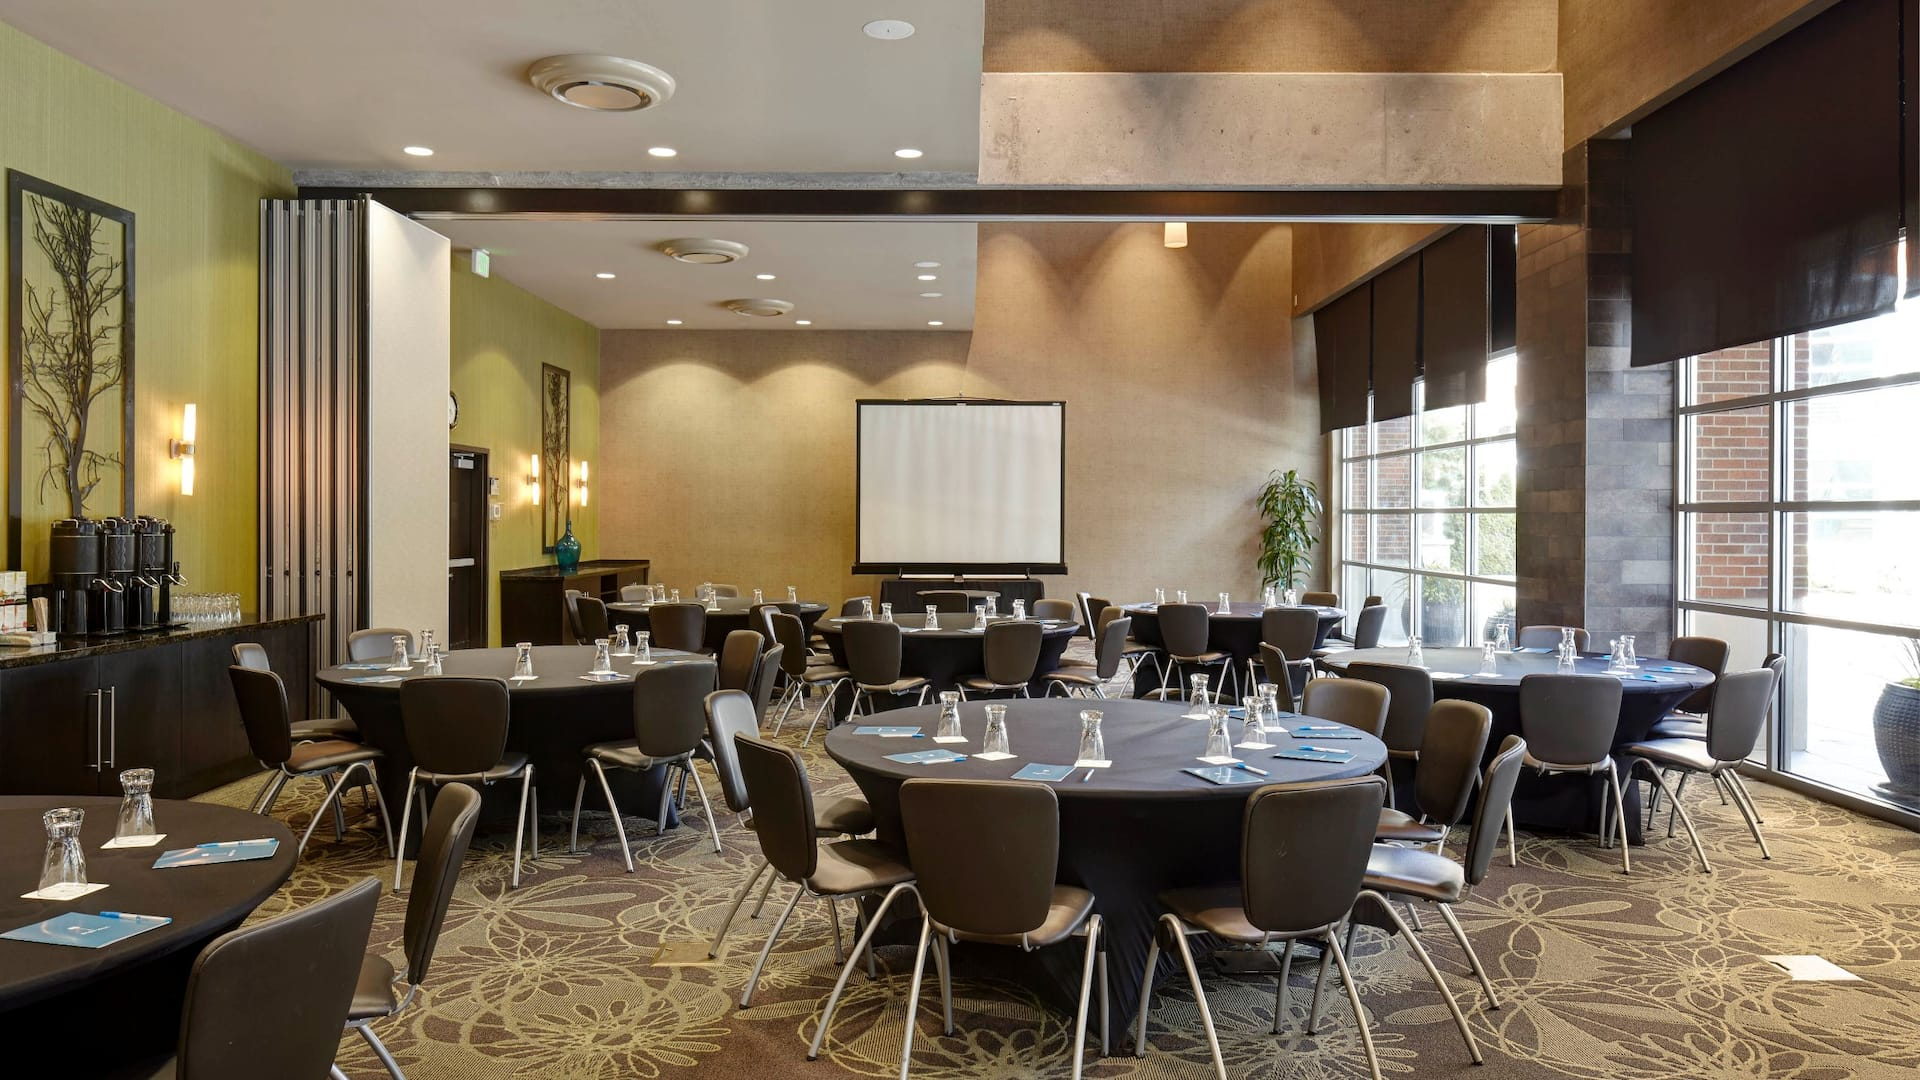 Corporate Round table setup